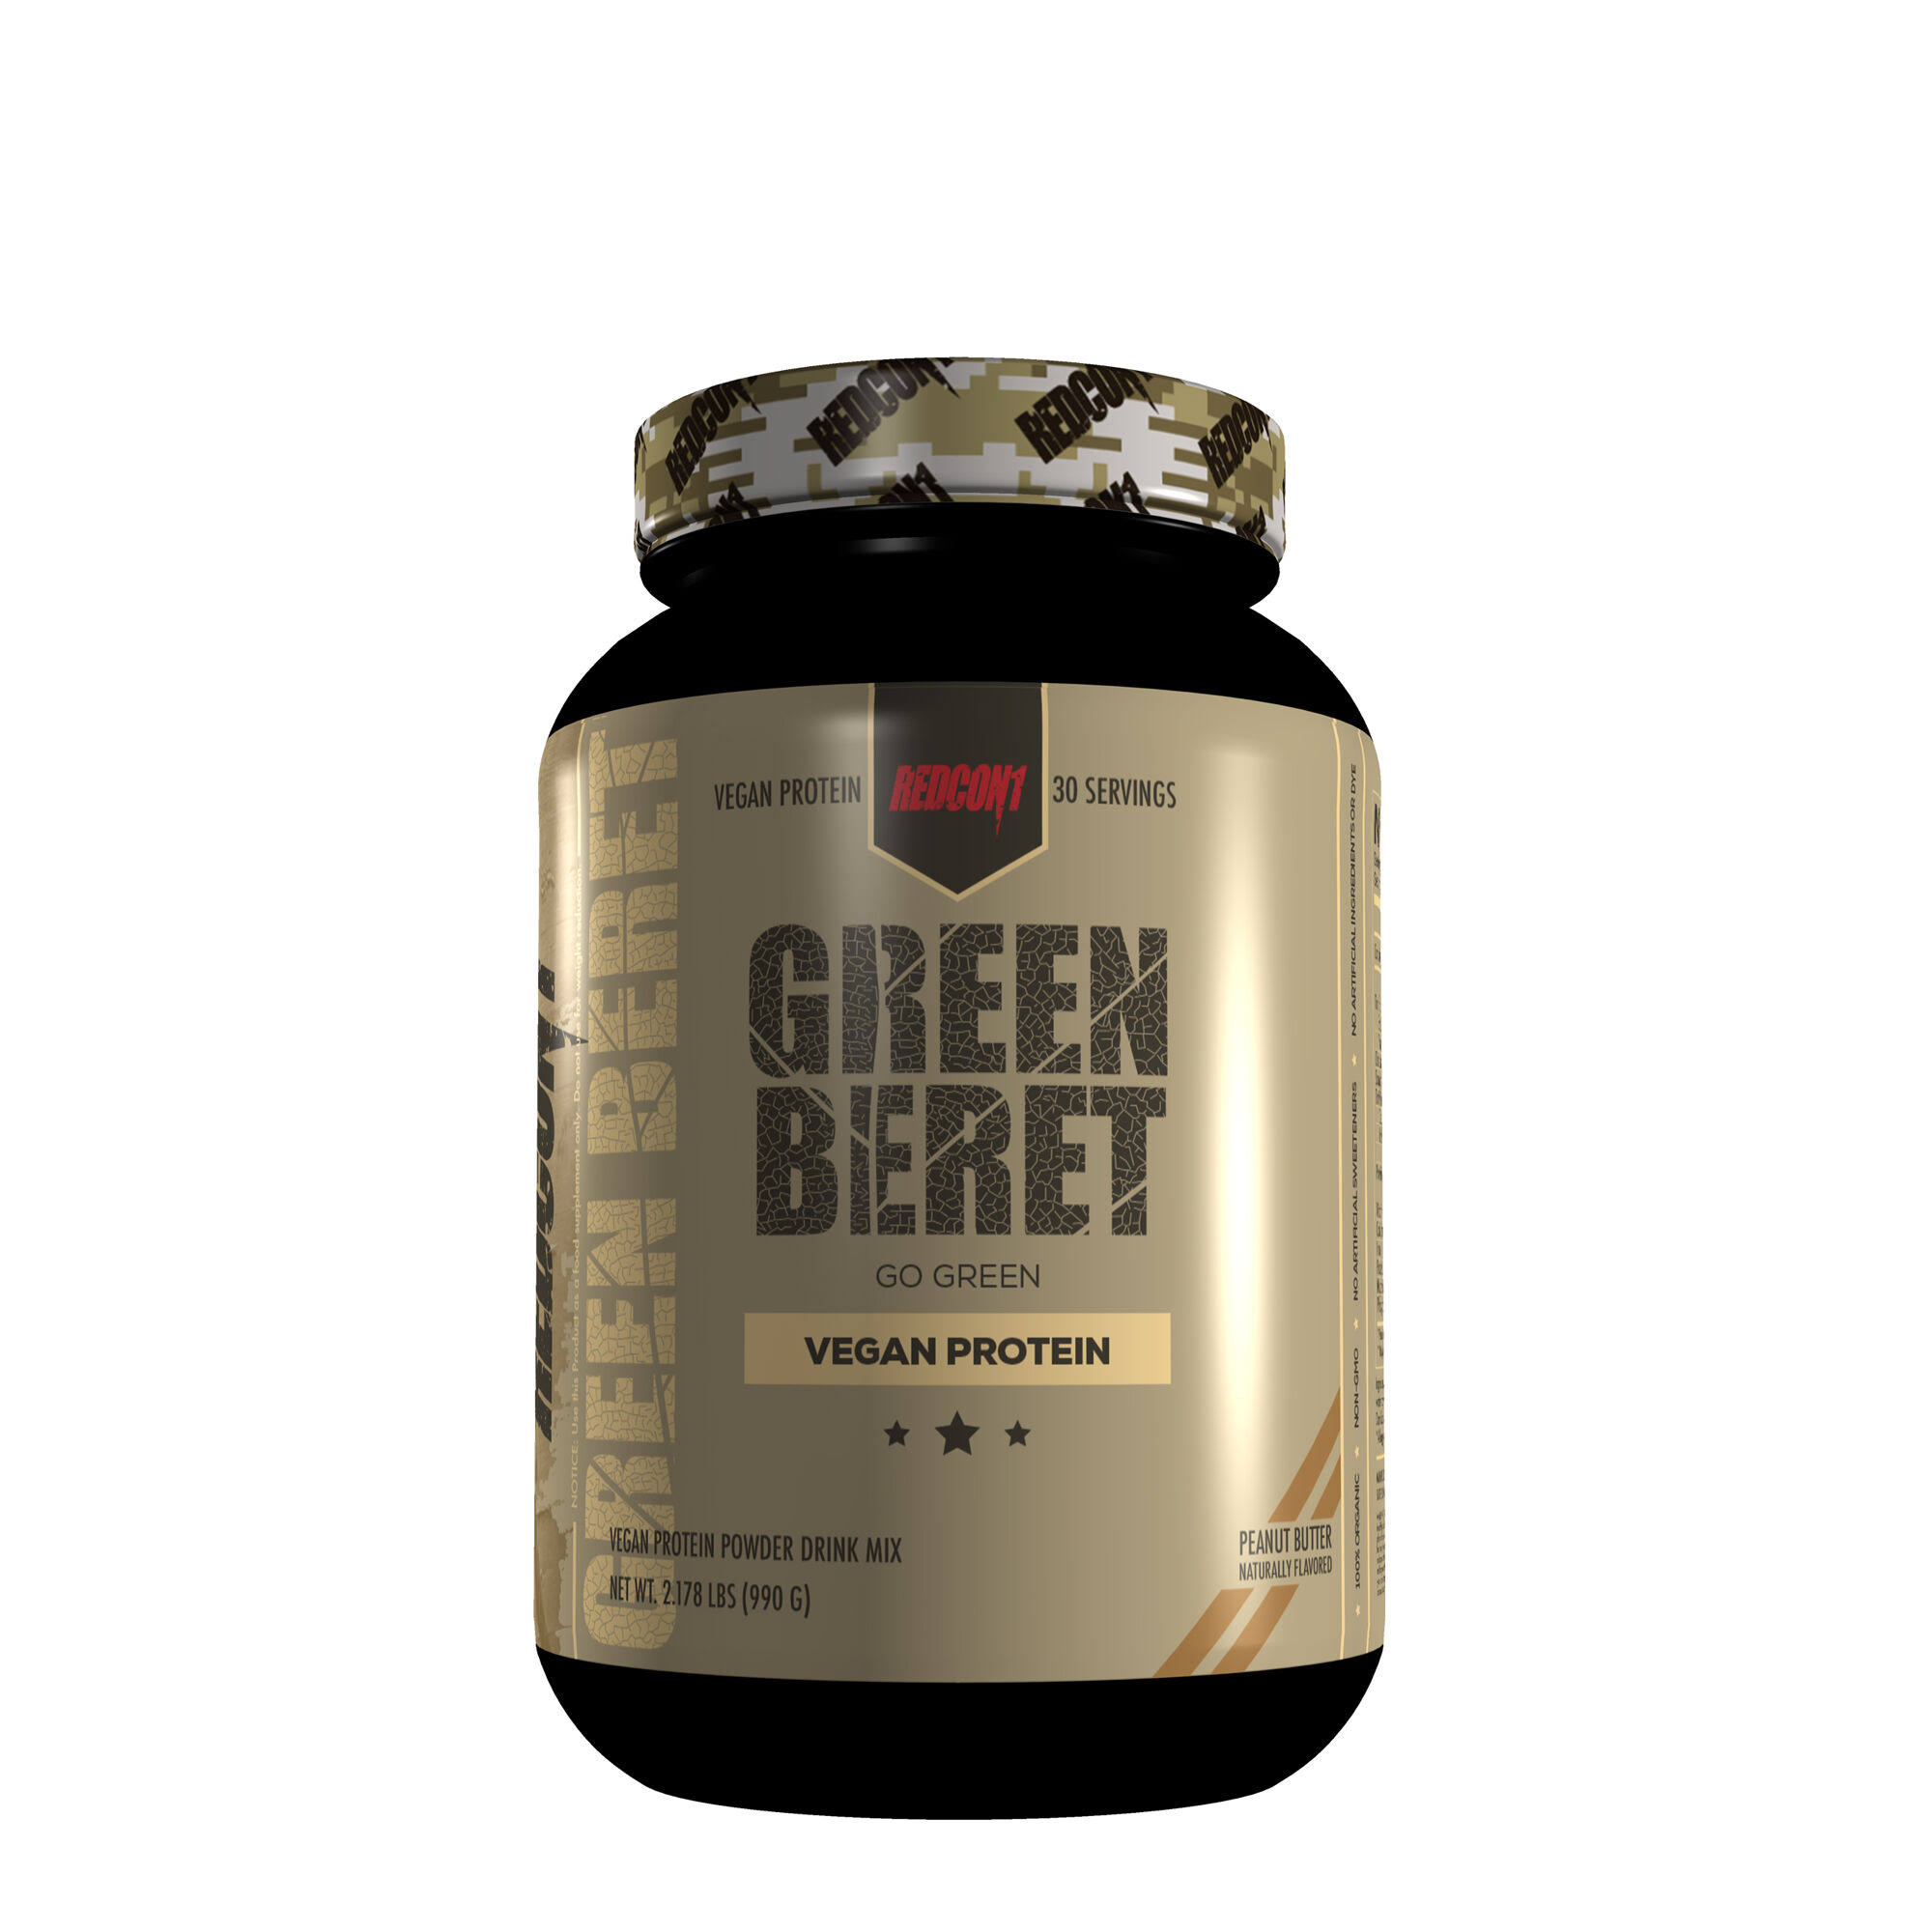 Green Beret Drink Mix, Vegan Protein, Peanut Butter, Powder - 34.84 oz